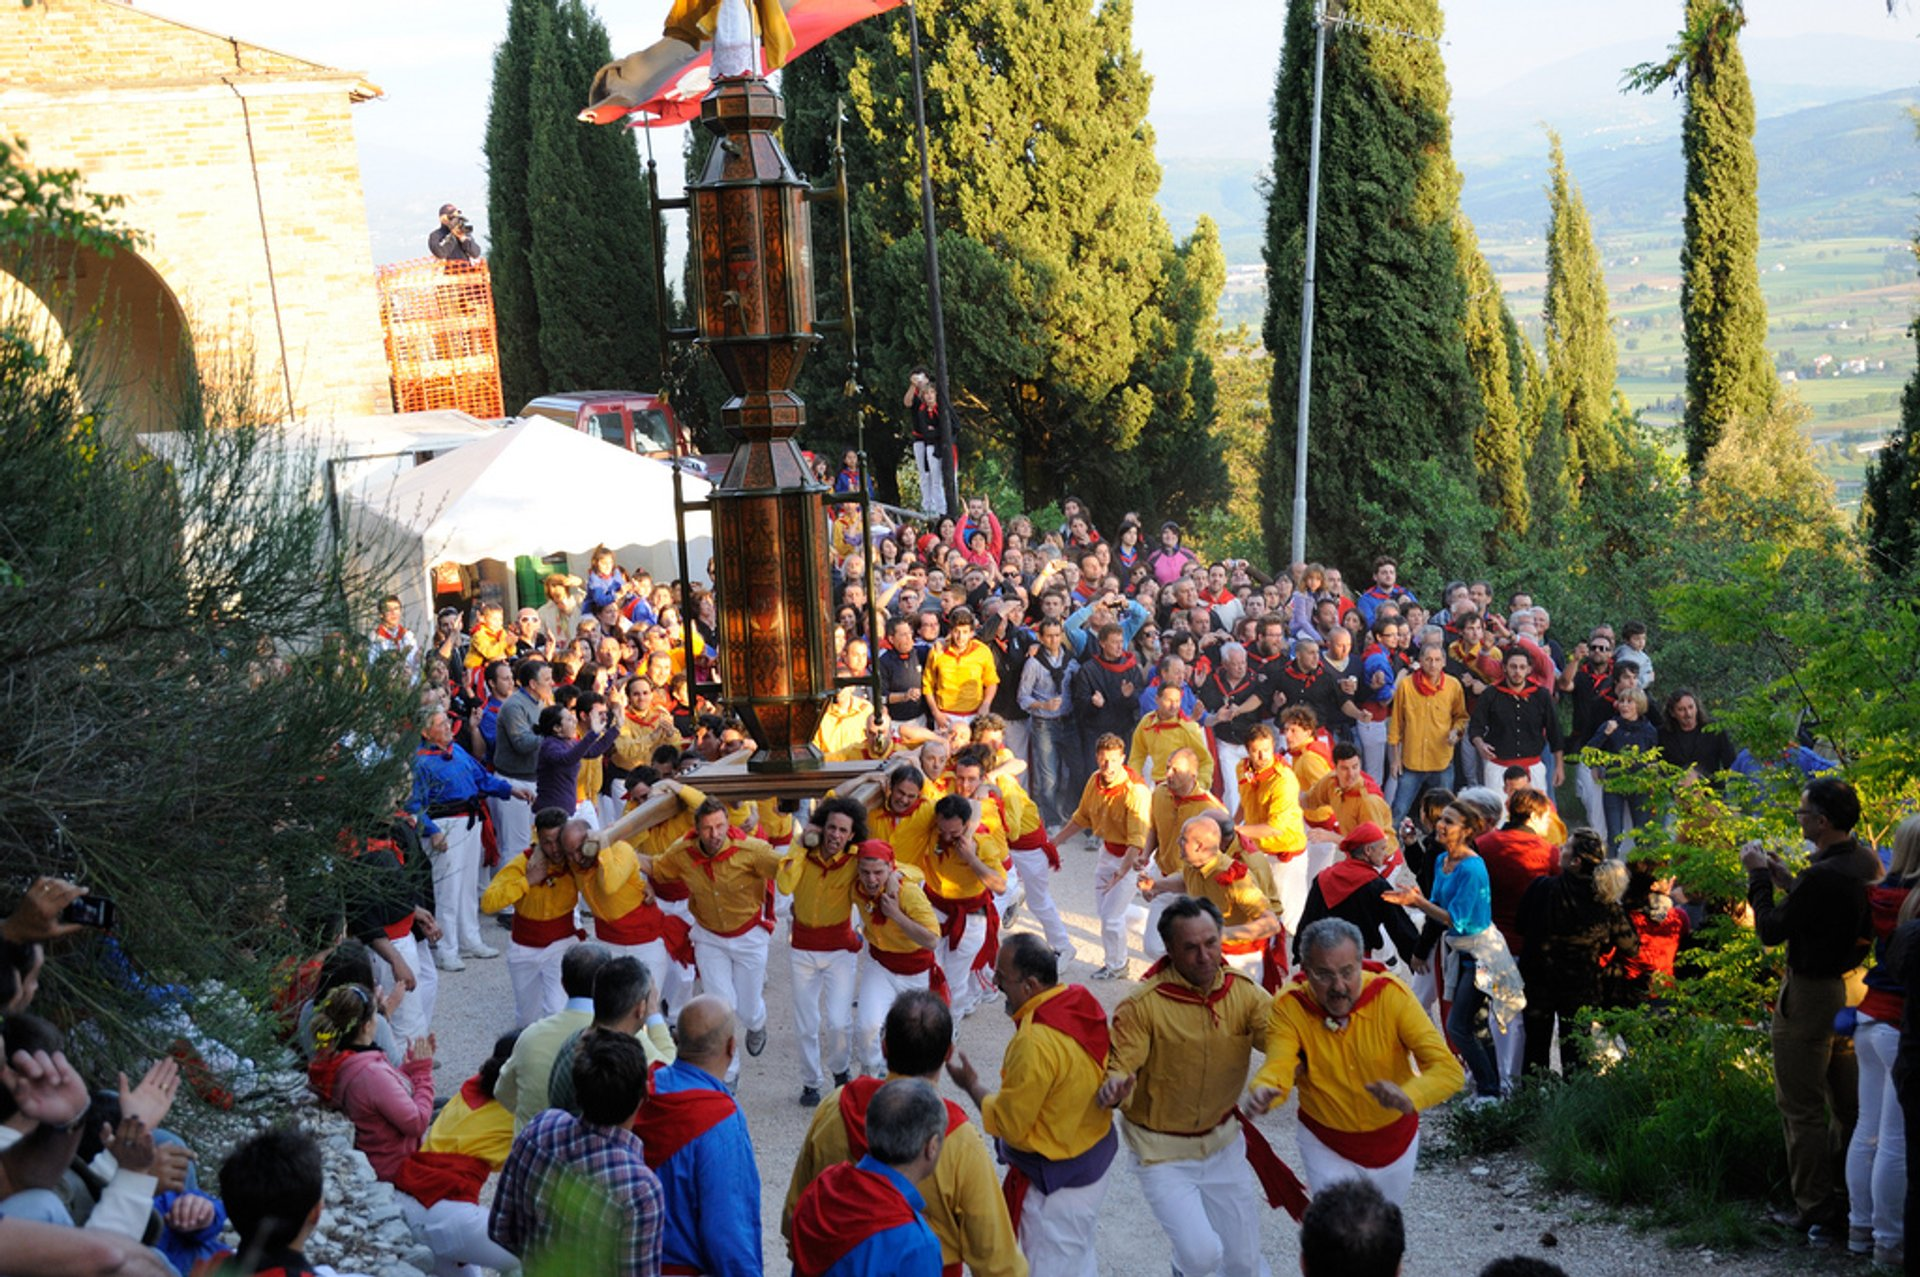 Gubbio Festa dei Ceri and Corsa dei Ceri (Race of the Candles) in Italy - Best Season 2020